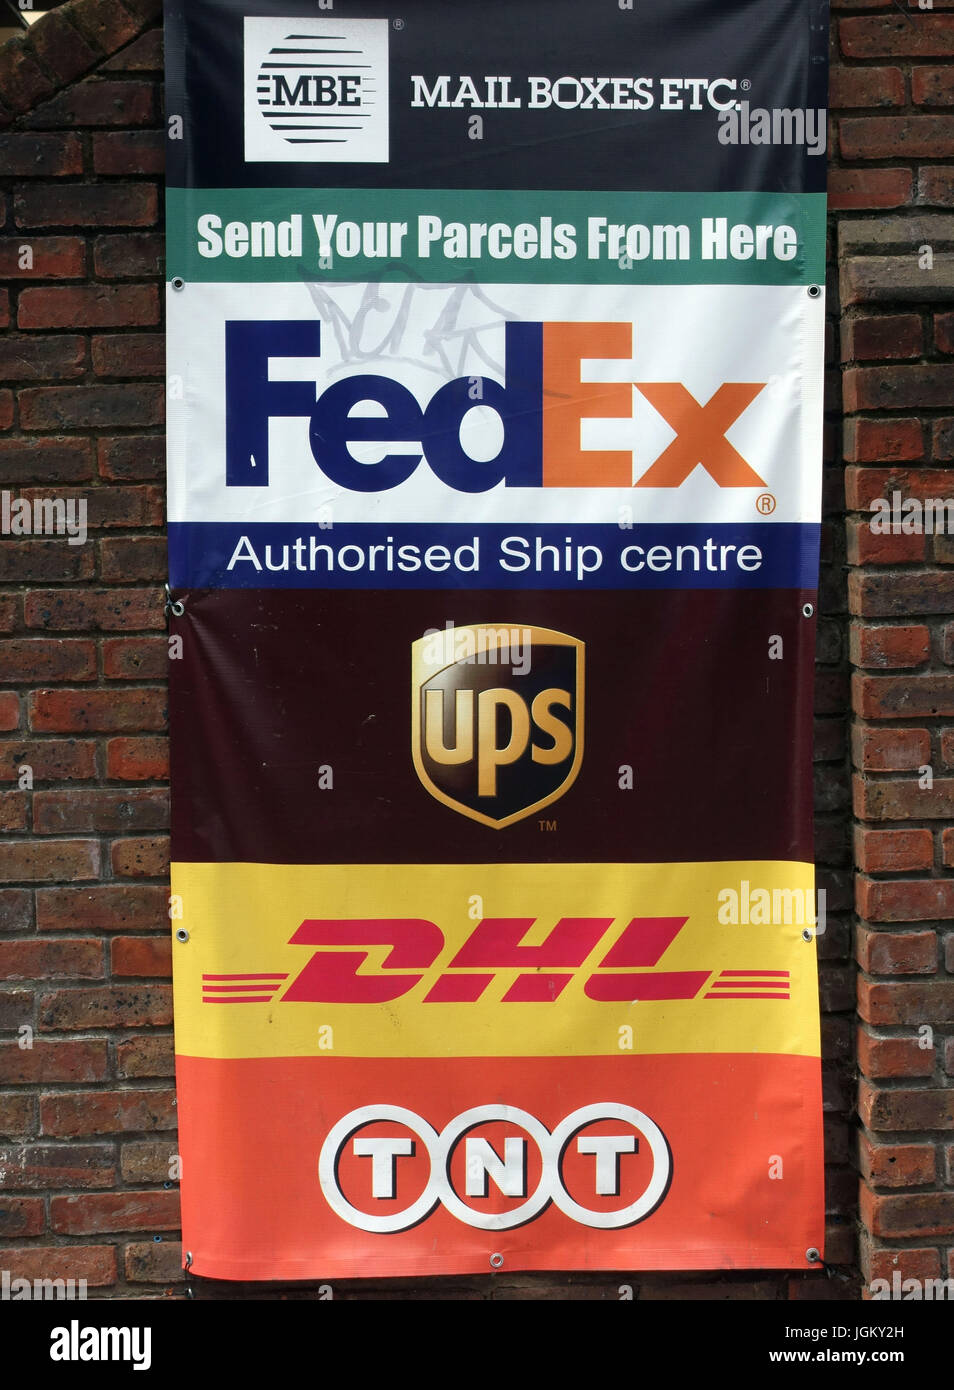 Courier companies' logos outside Mail Boxes Etc shipping centre in London - Stock Image